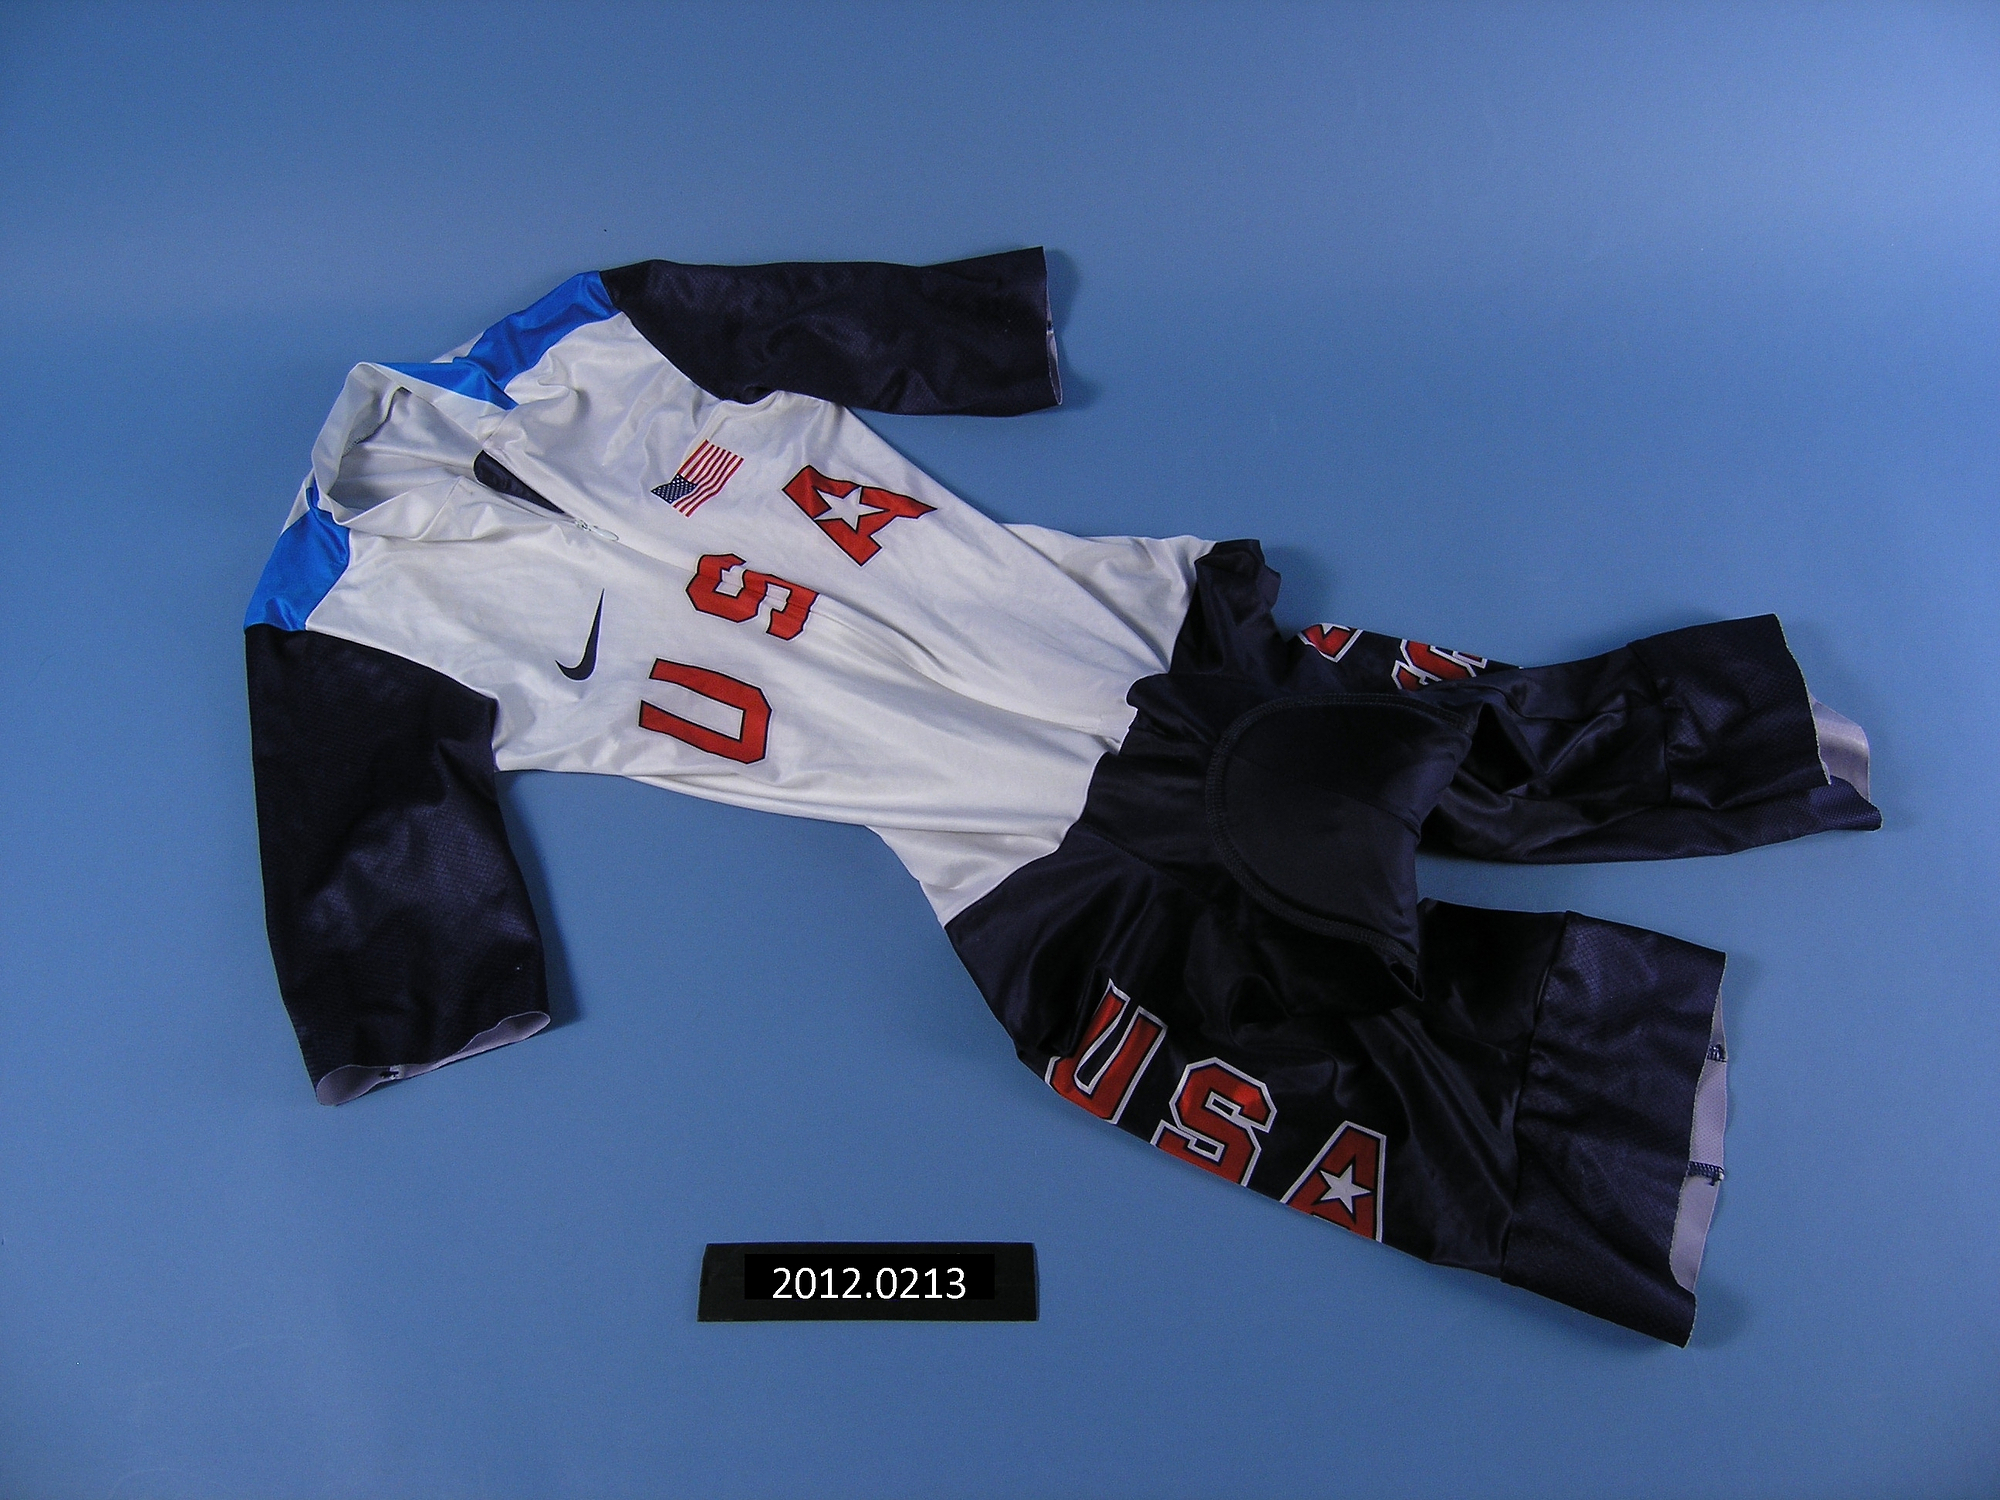 2008 Olympic Cycling Uniform worn by Bobby Lee.